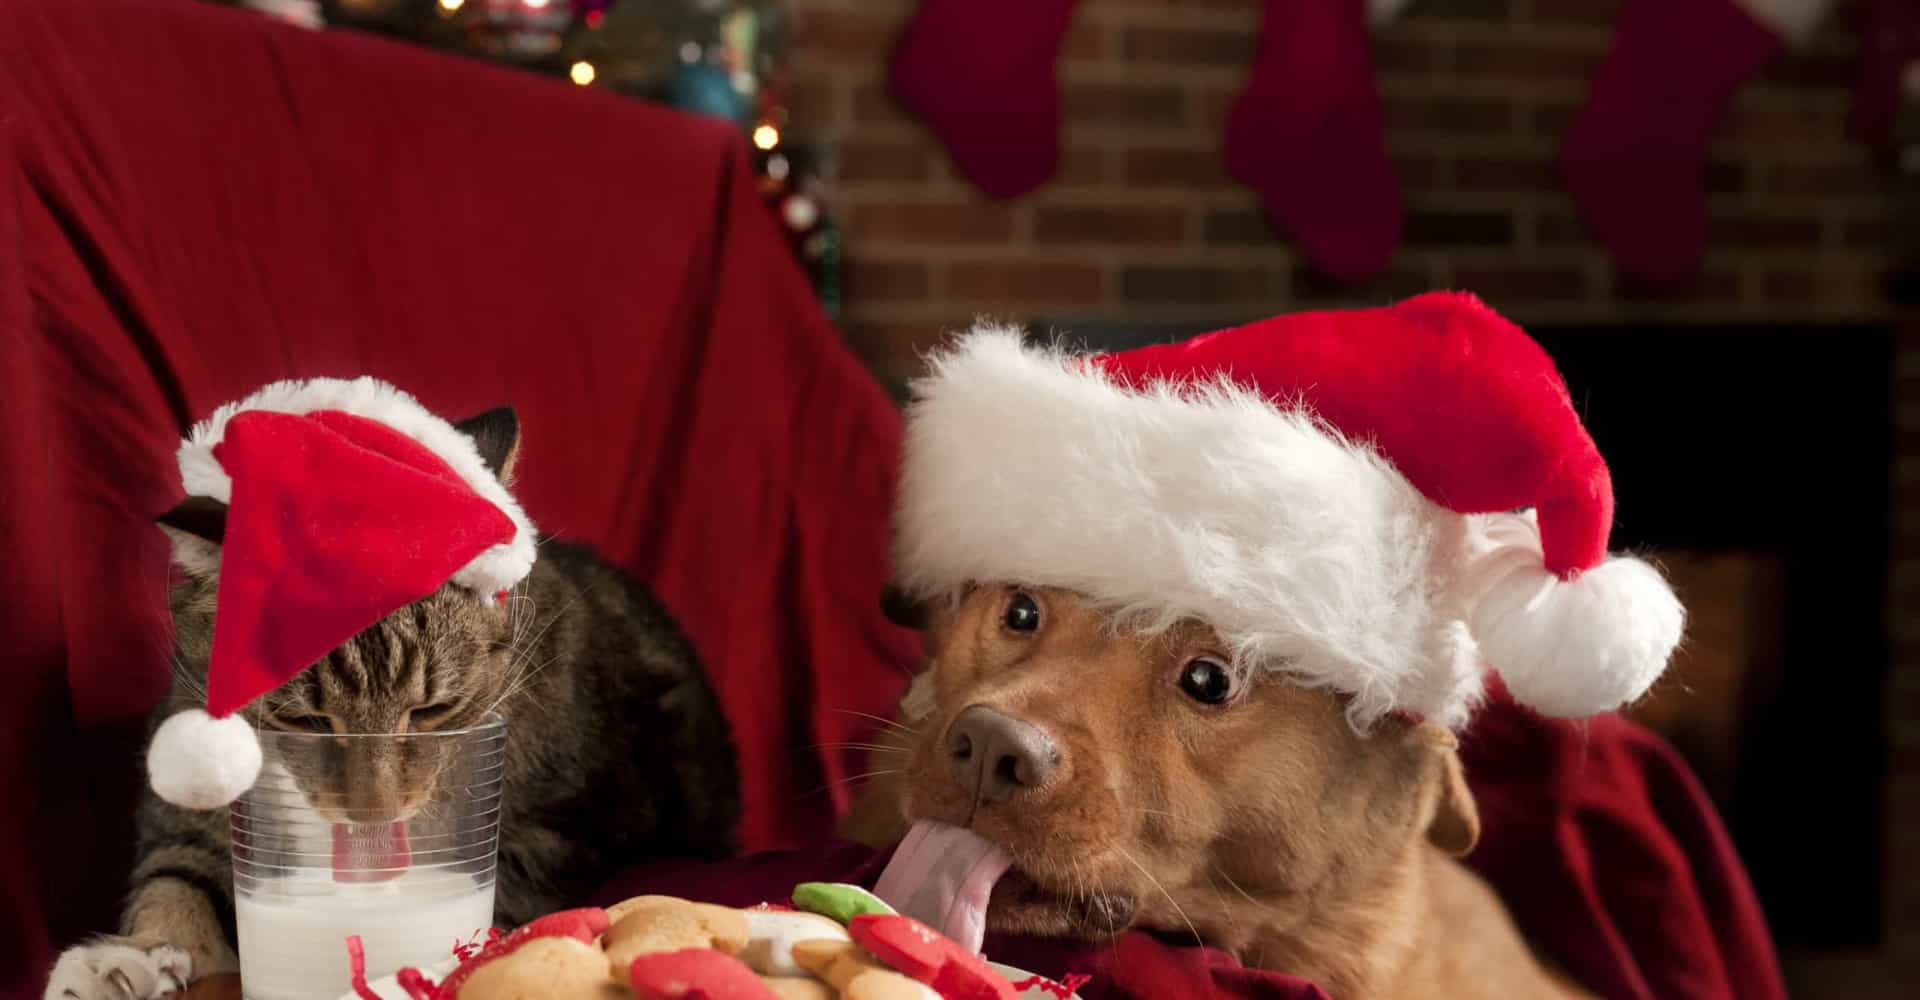 Adorable animals celebrating Christmas